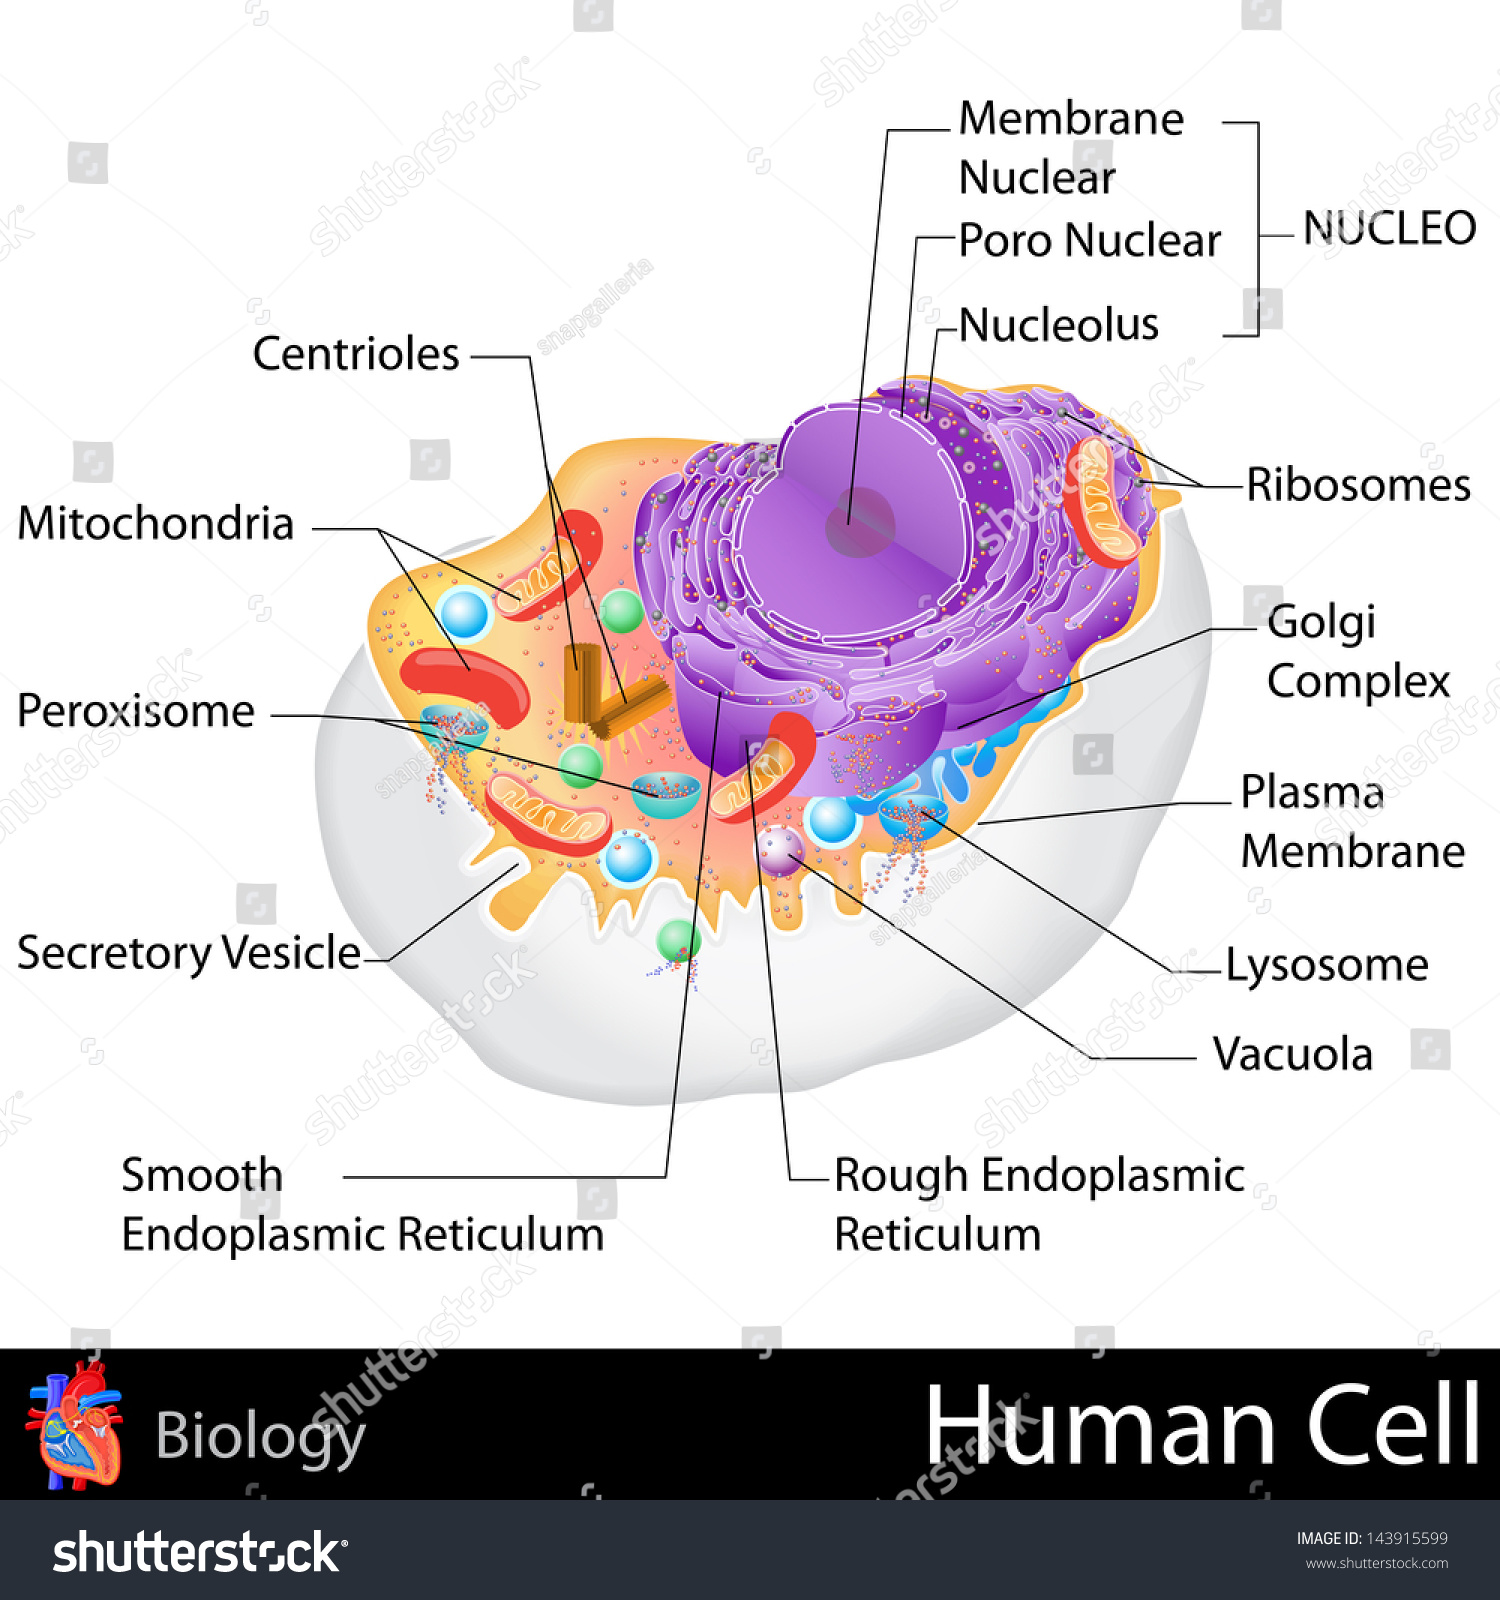 fat structure diagram wiring gibson les paul junior easy edit vector illustration human cell stock